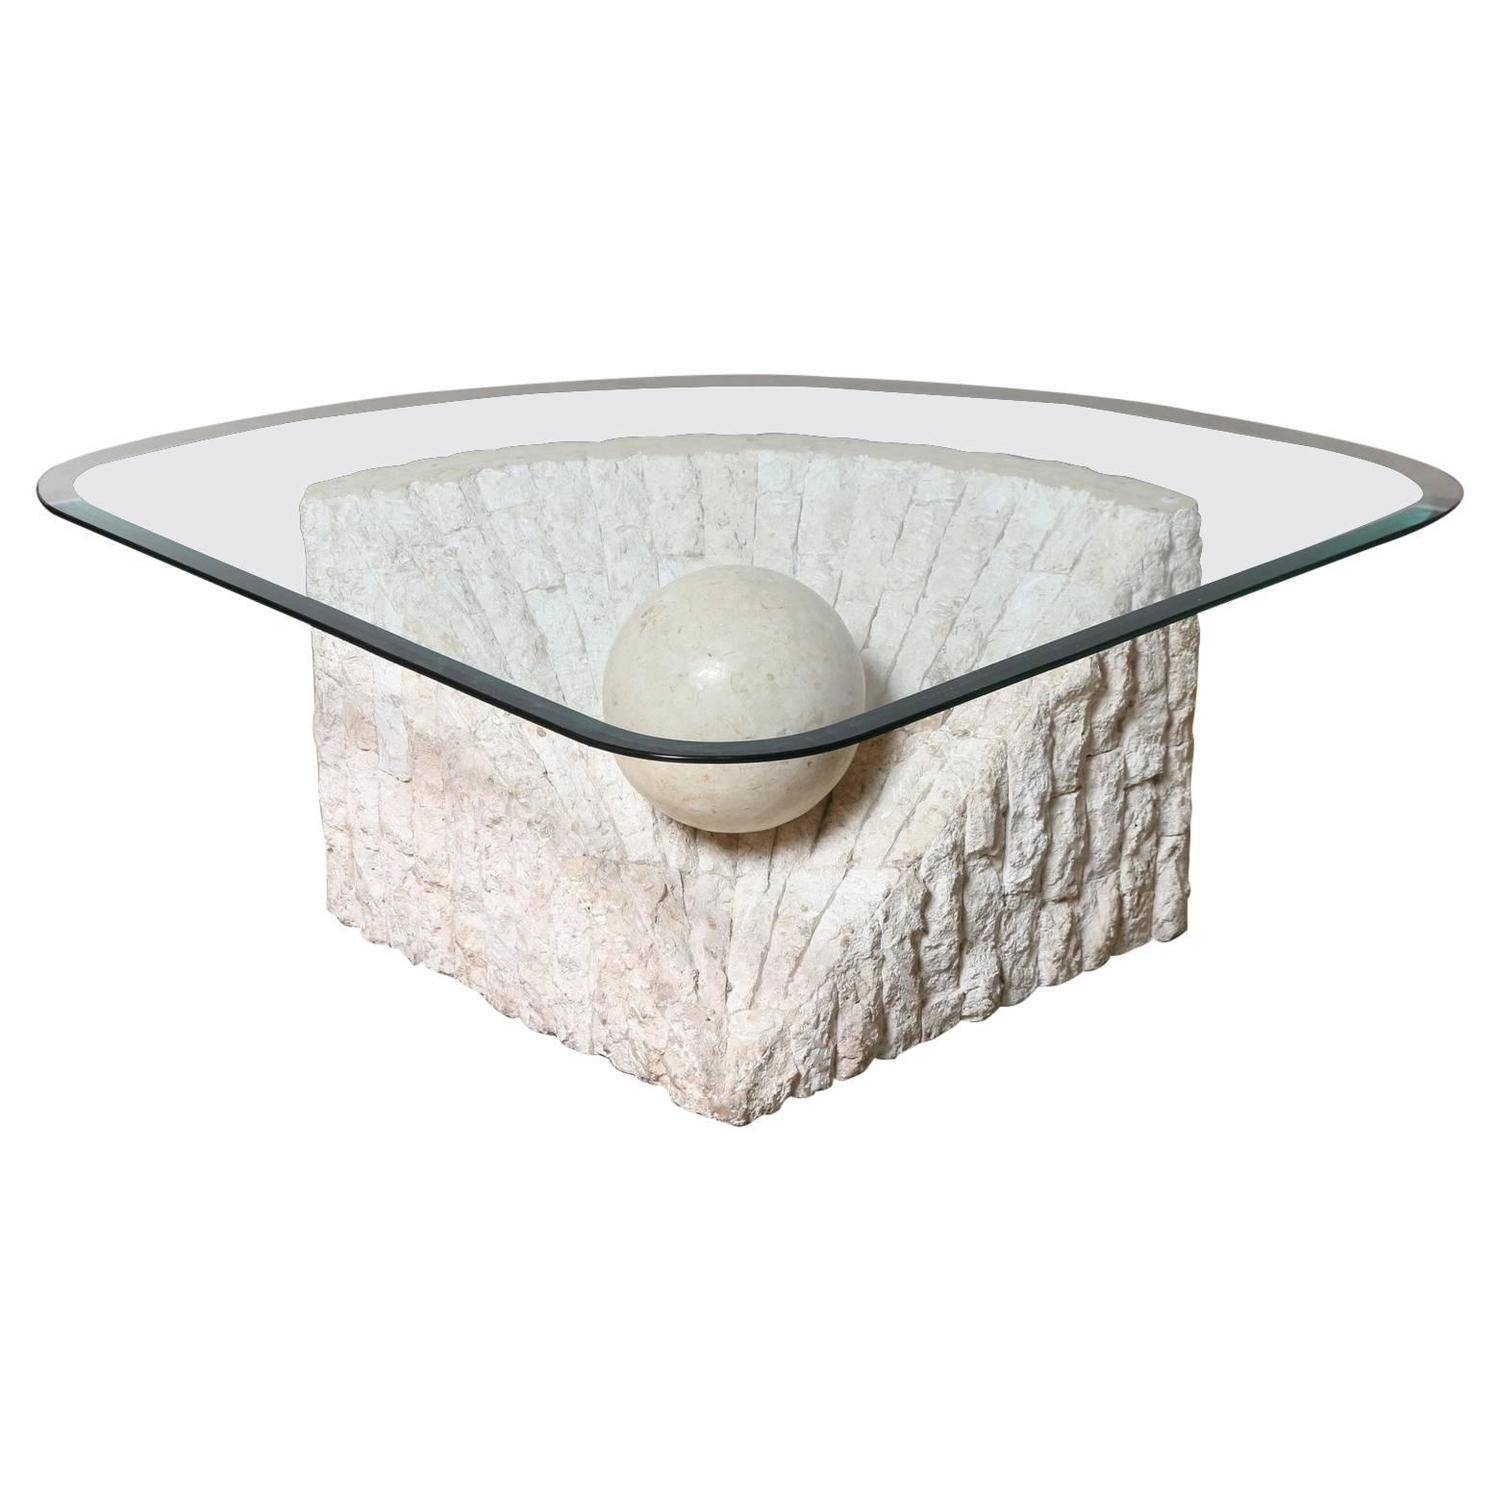 Triangular Marble And Travertine Coffee Table With Beveled Edge with Swirl Glass Coffee Tables (Image 24 of 30)